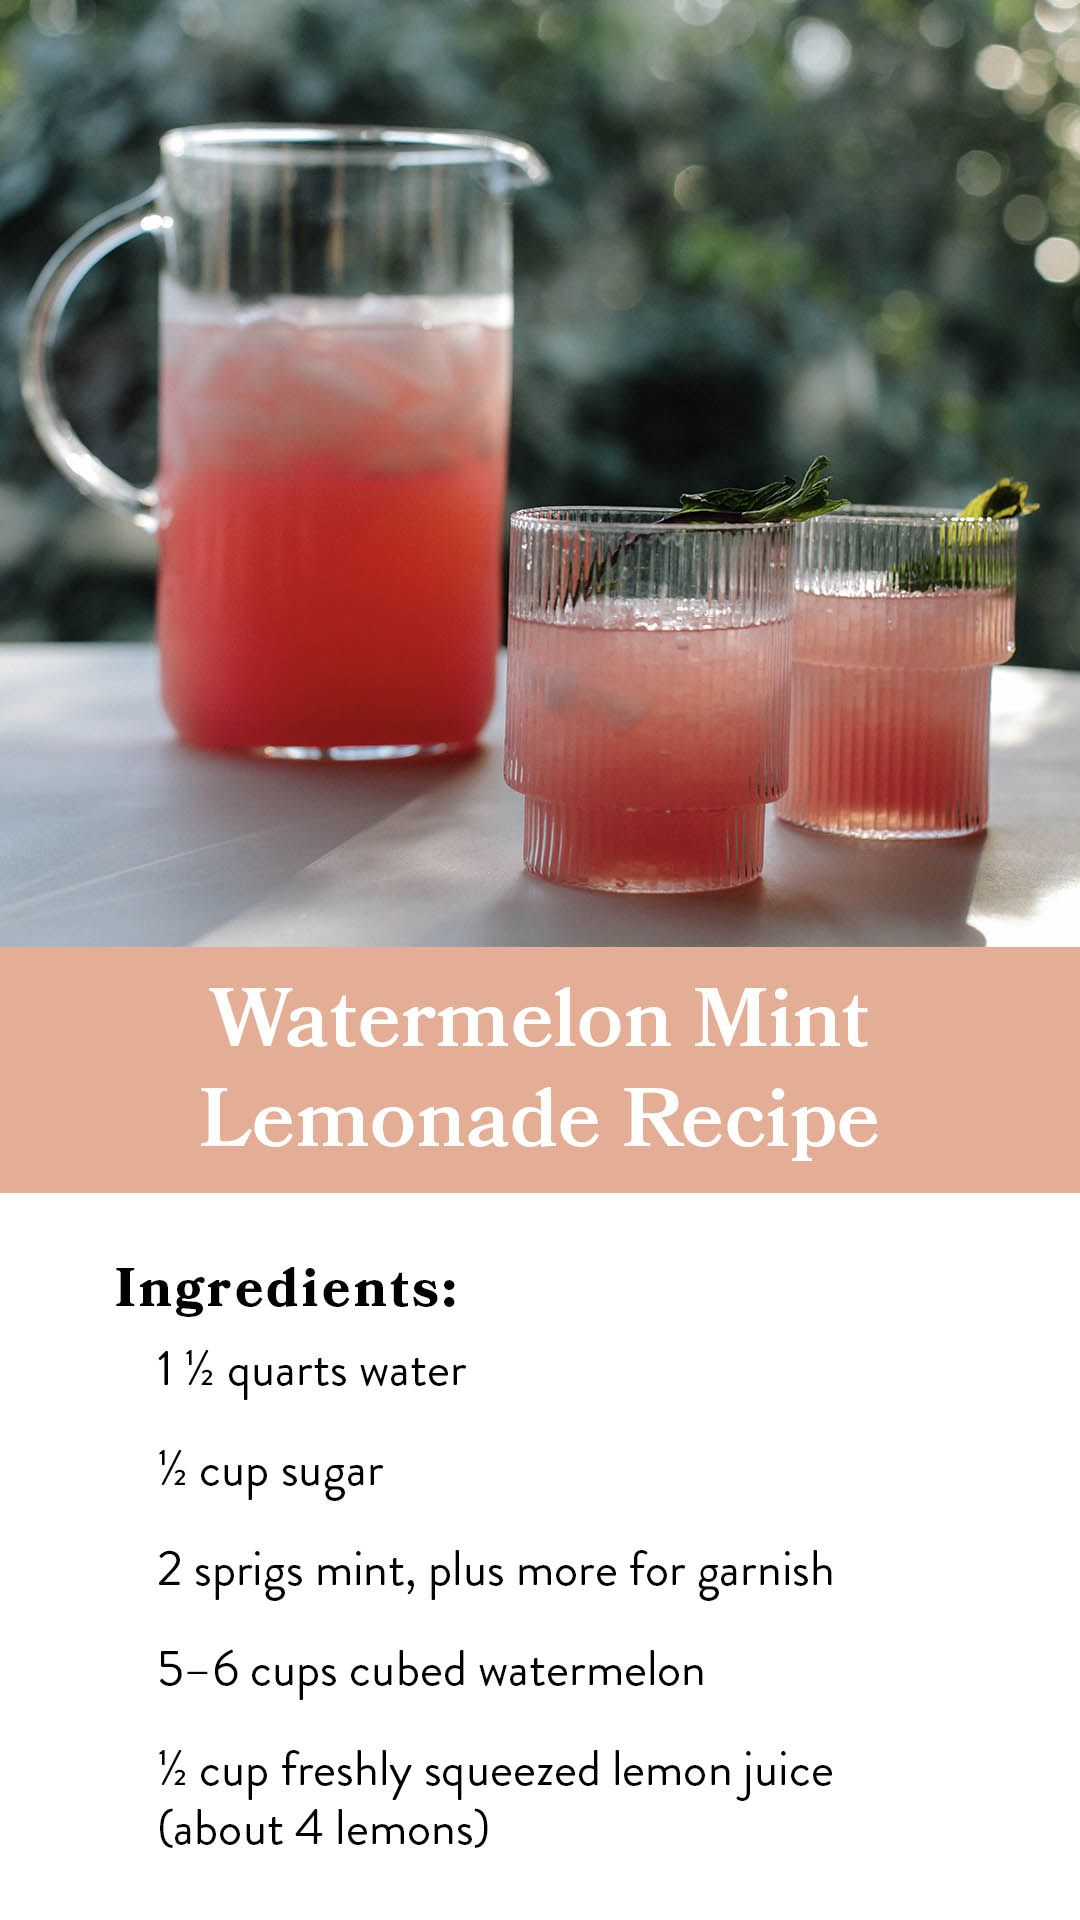 Magnolia Journal Subscribe For 20 Free Shipping In 2020 Mint Lemonade Recipe Watermelon Mint Lemonade Mint Lemonade